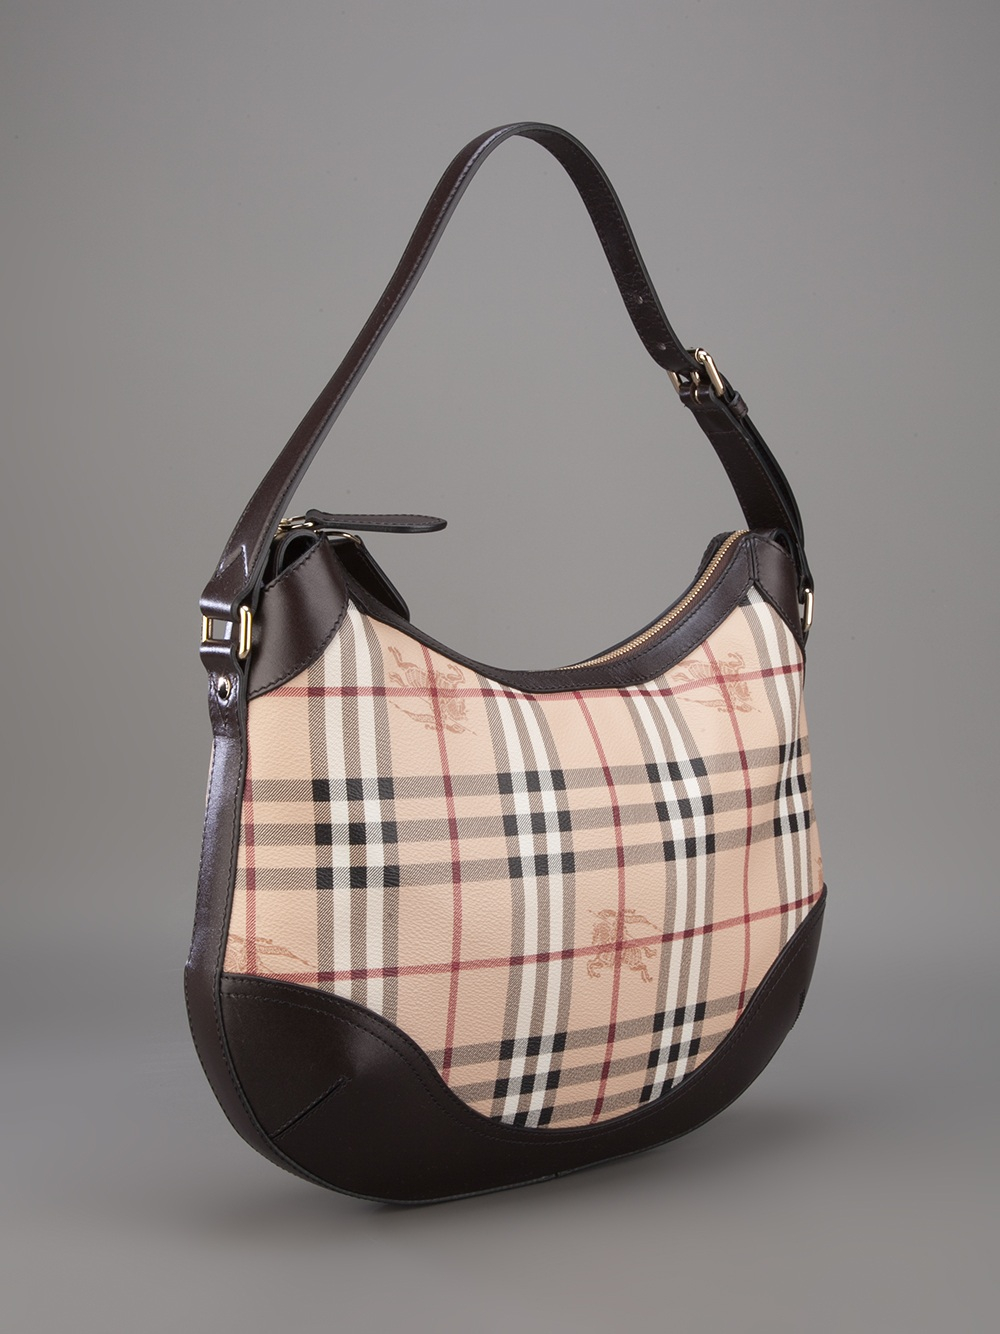 Burberry Datchet Tote in Brown (Natural)